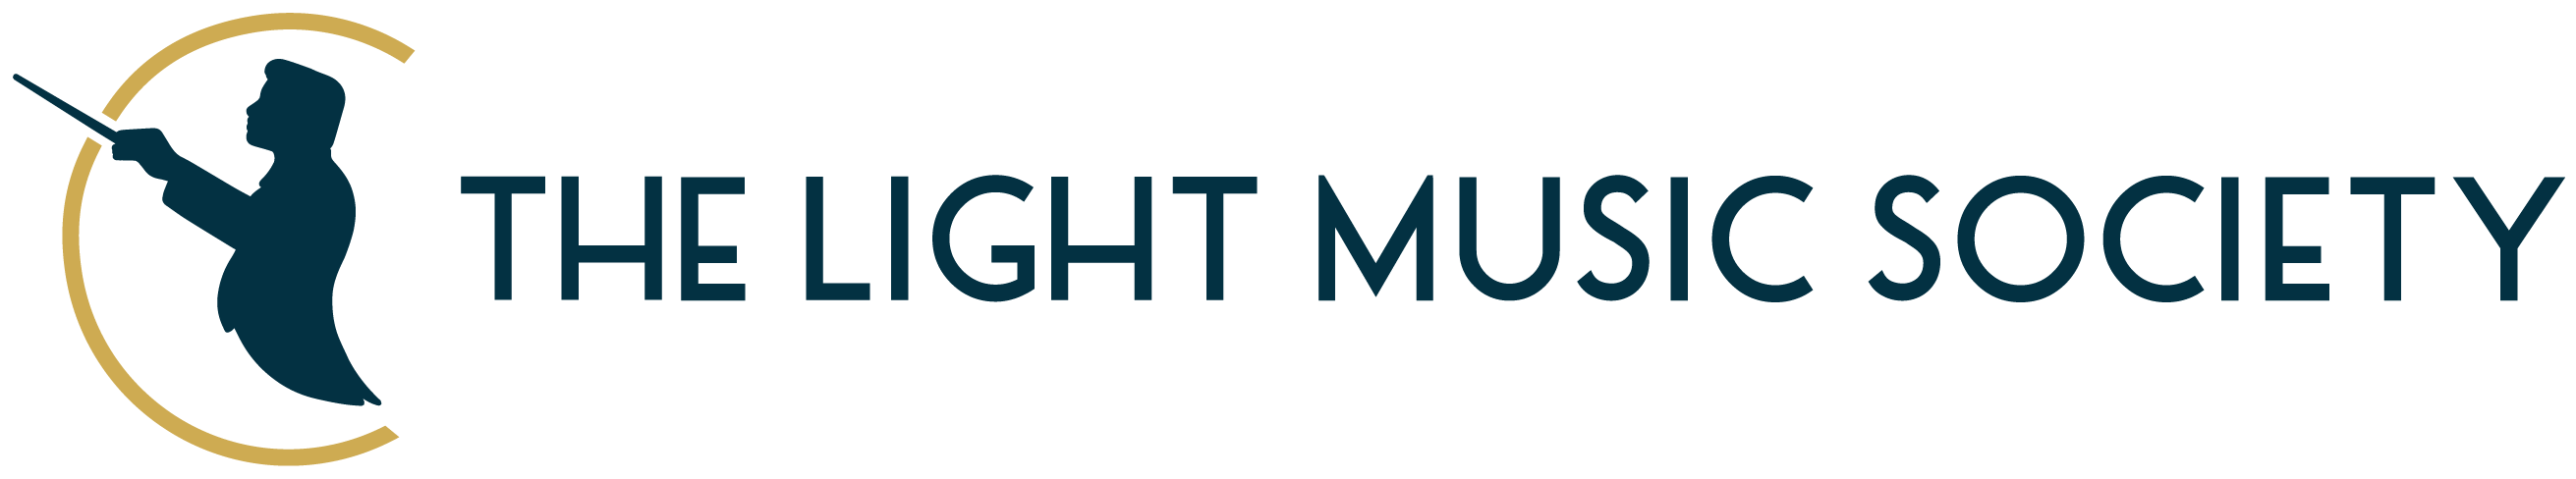 The Light Music Society